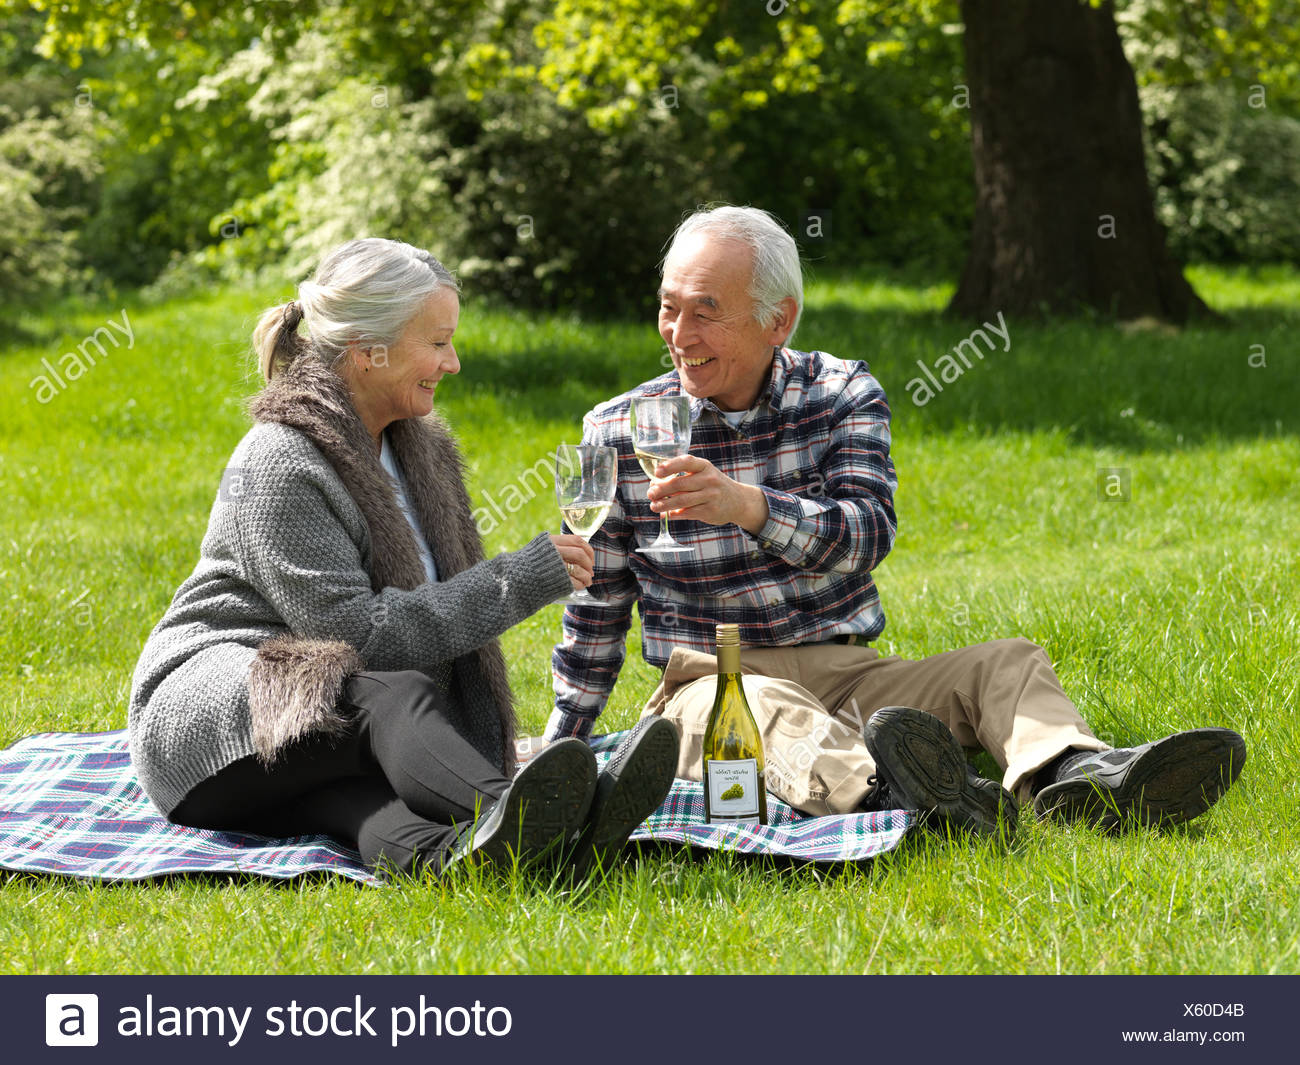 Vieux couple toasting each other Photo Stock